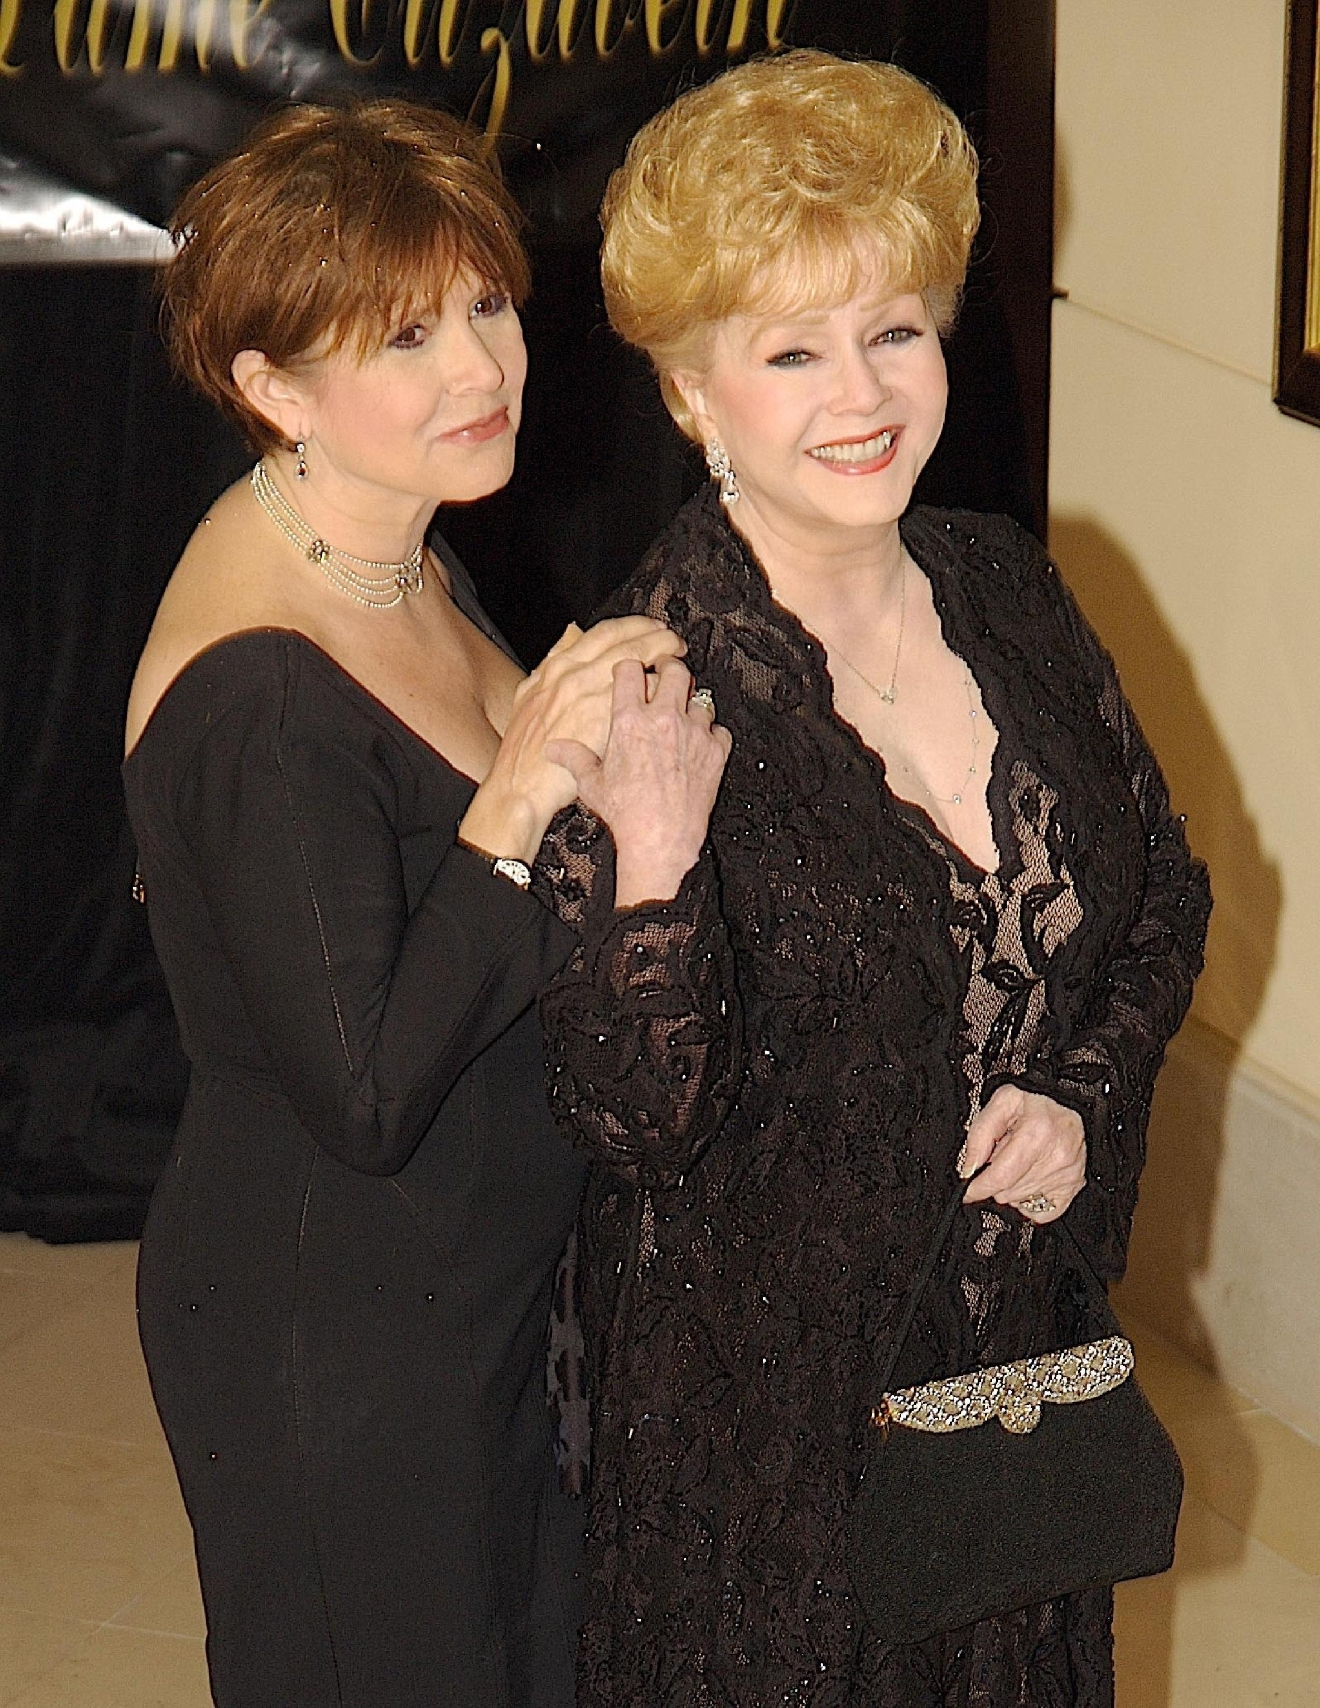 Debbie Reynolds and Carrie Fisher                  Dame Elizabeth Taylor celebrates her 75th Birthday at The Ritz Carlton                  Las Vegas, Nevada - 27.02.07                                    Featuring: Debbie Reynolds and Carrie Fisher                  Where: NV, United States                  When: 27 Feb 2007                  Credit: Tommy Gravad / WENN